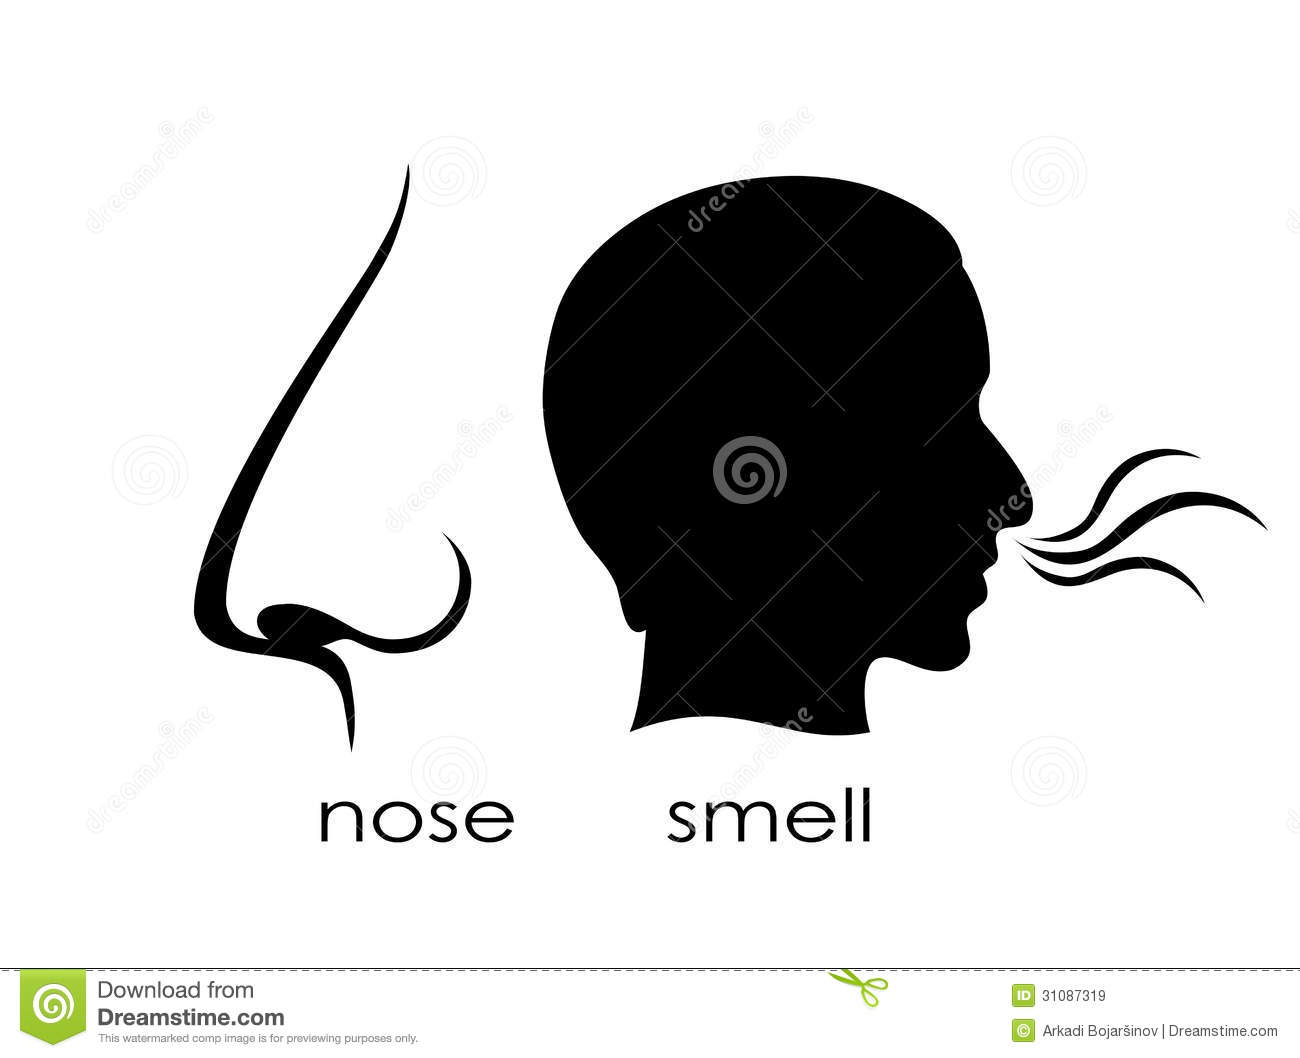 Clipart Nose Smelling Smell Stock Illustrations Vectors   Clipart